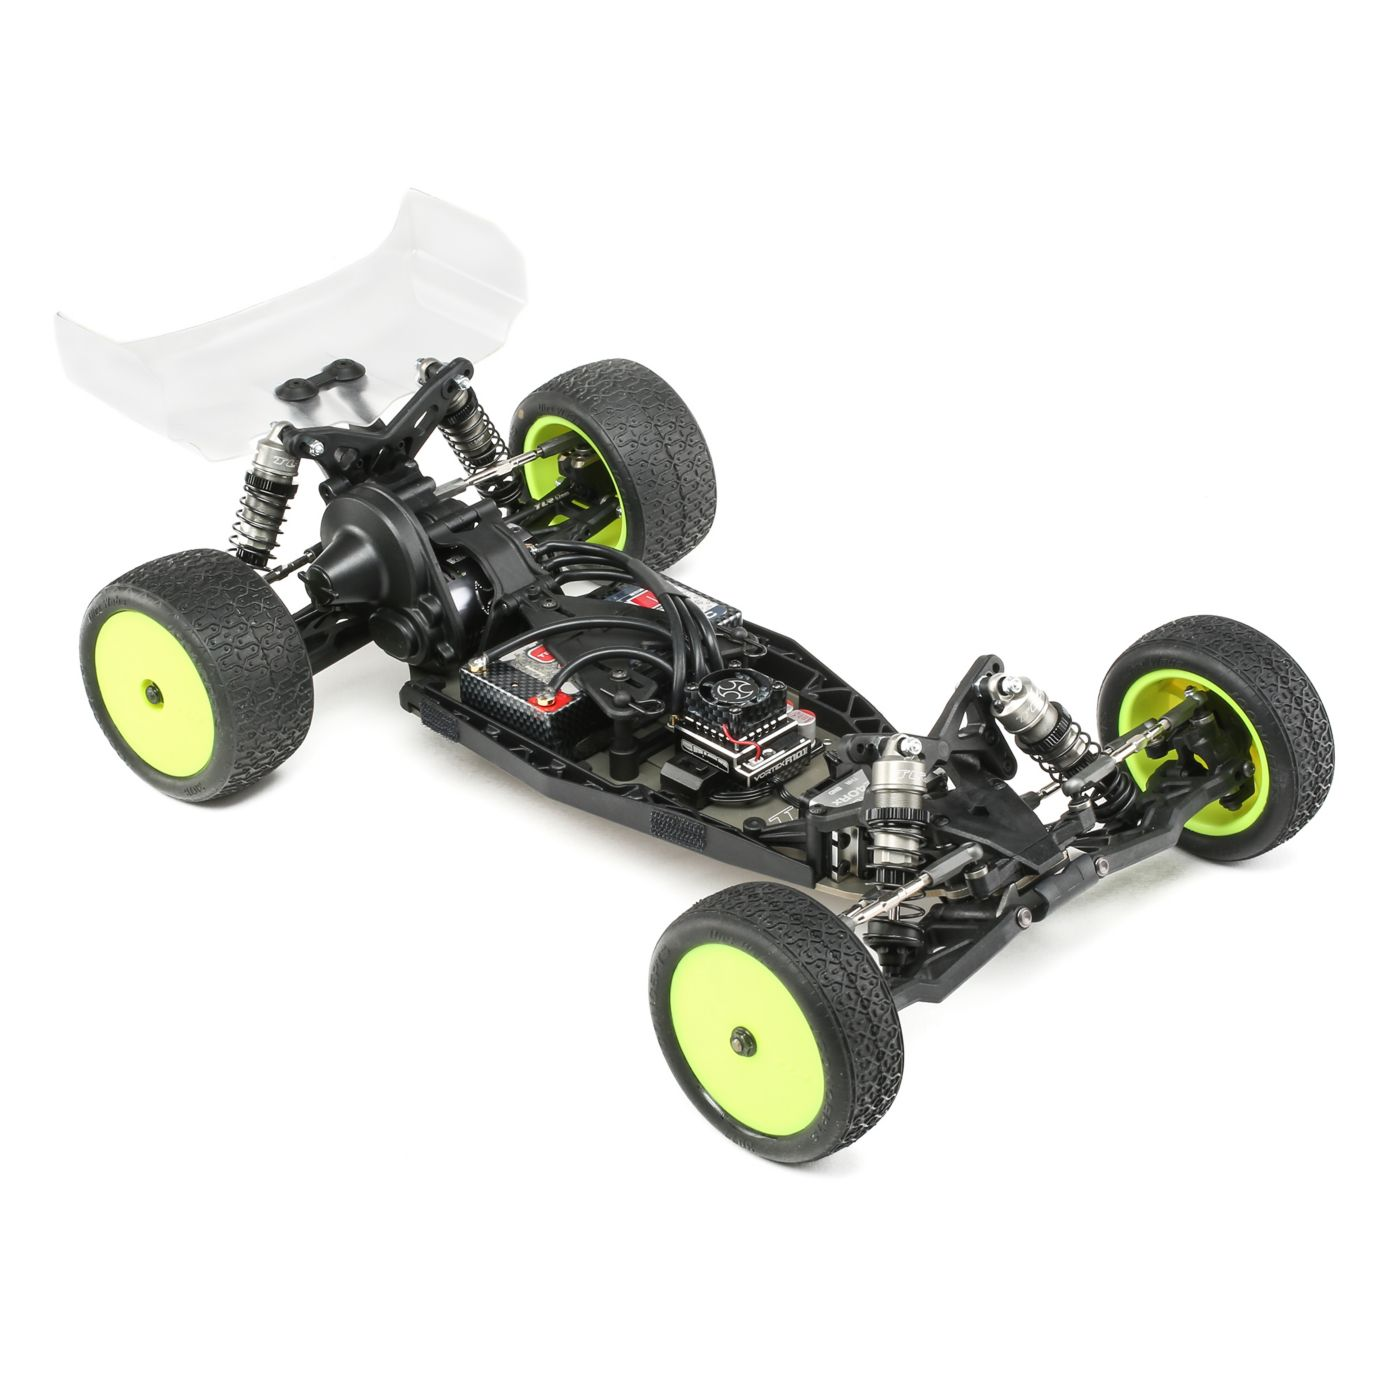 Team Losi Racing 22 4.0 Chassis